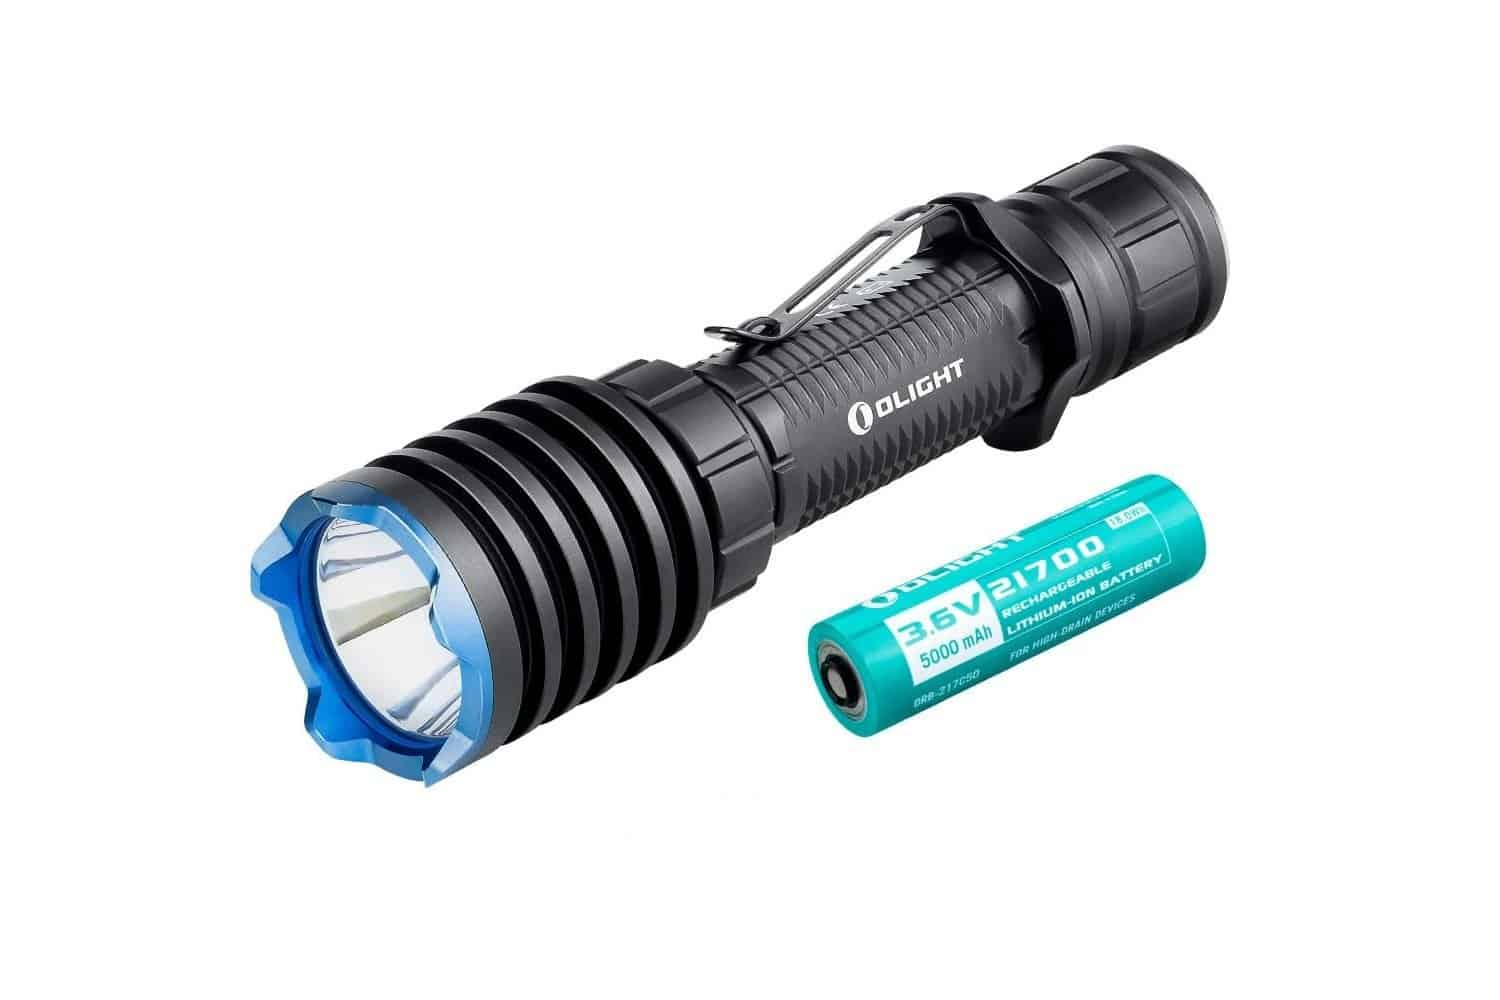 OLIGHT Warrior X Pro 2250 Lumens Neutral White USB Magnetic Rechargeable Tactical Flashlight